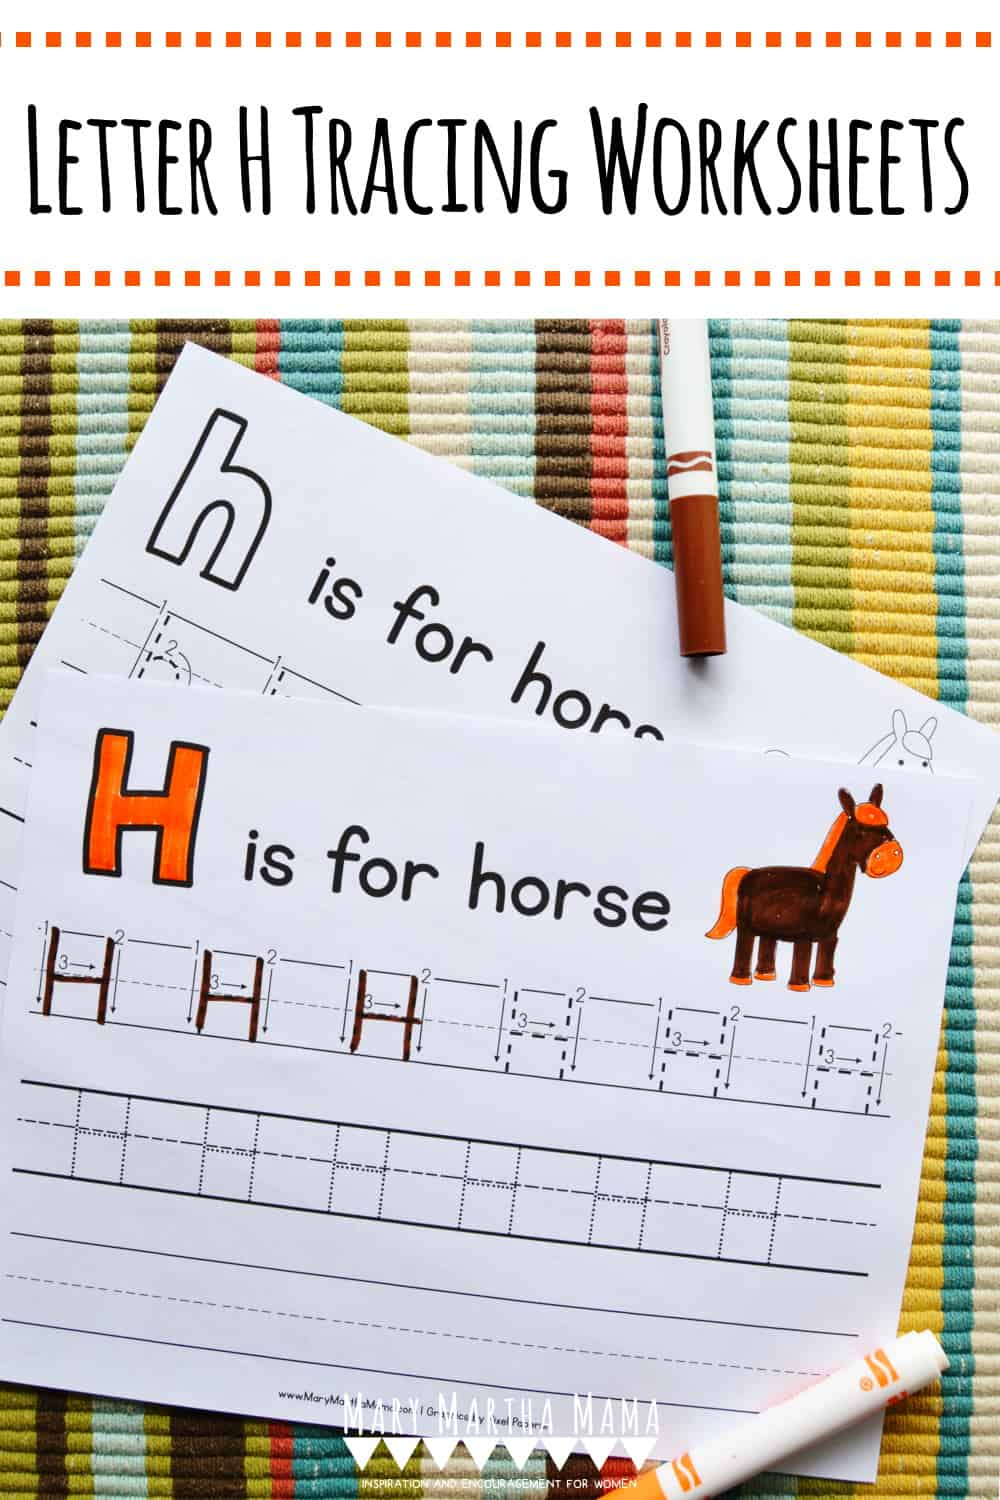 Is your child working on handwriting?  Use these free printable Letter H Tracing Worksheets to help him or her develop proper letter formation.